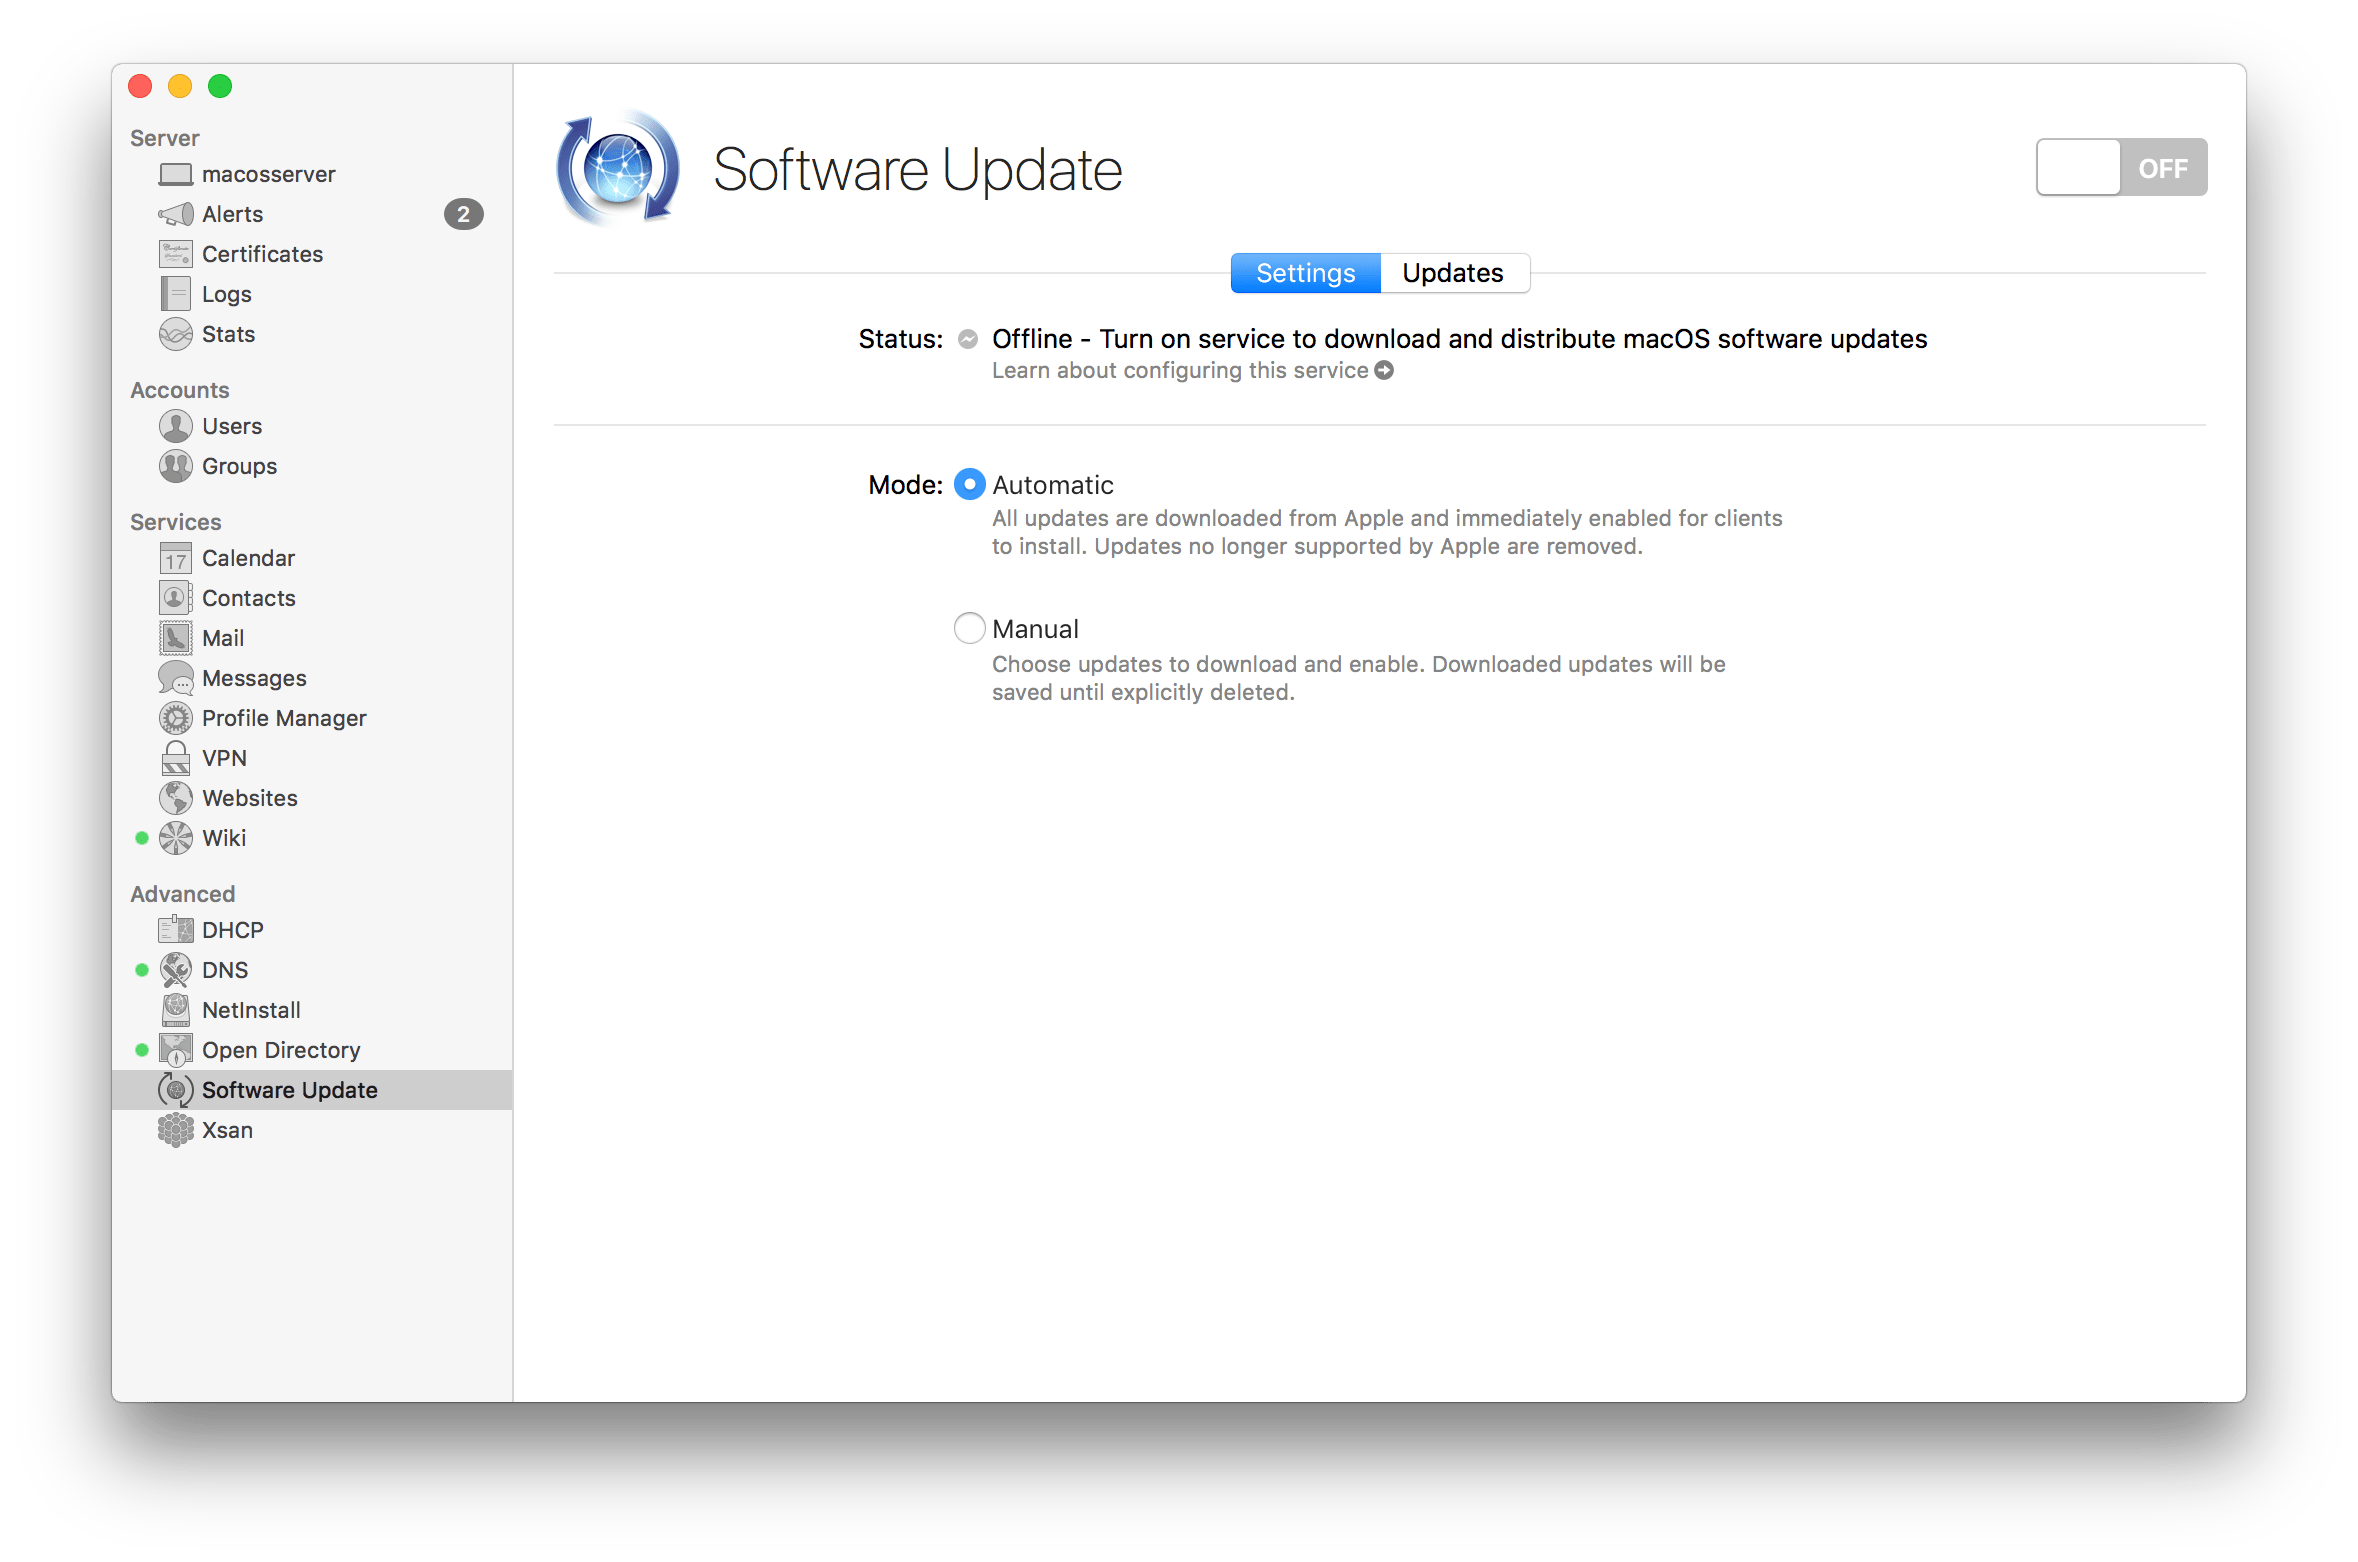 Manage The Software Update Service In macOS Server 5 4 - krypted